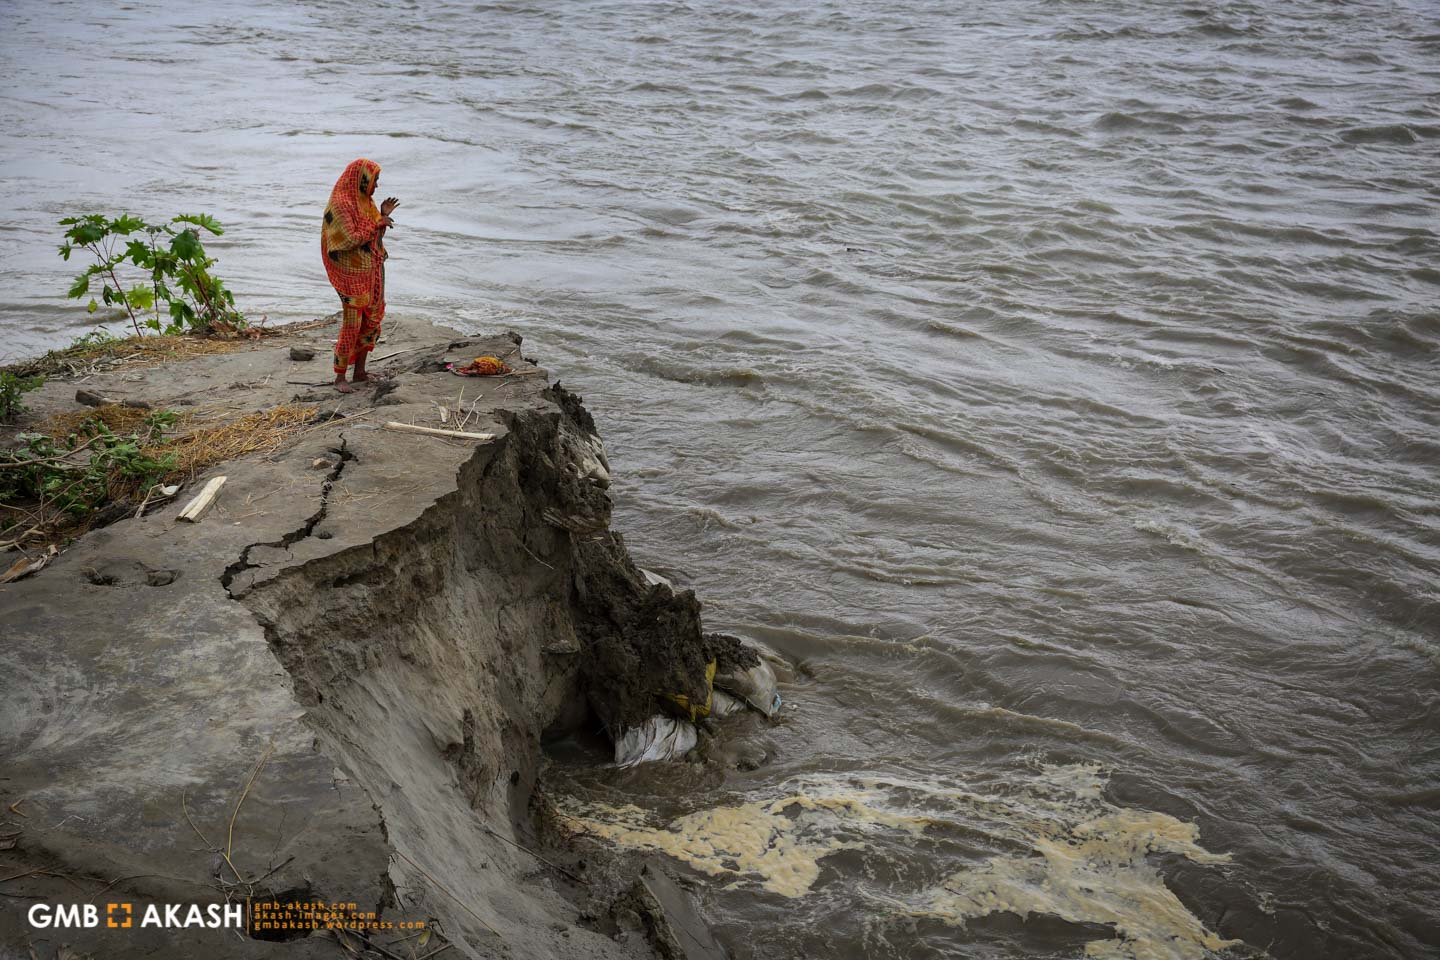 A woman stands beside the River Jamuna where erosion is eating into its banks.